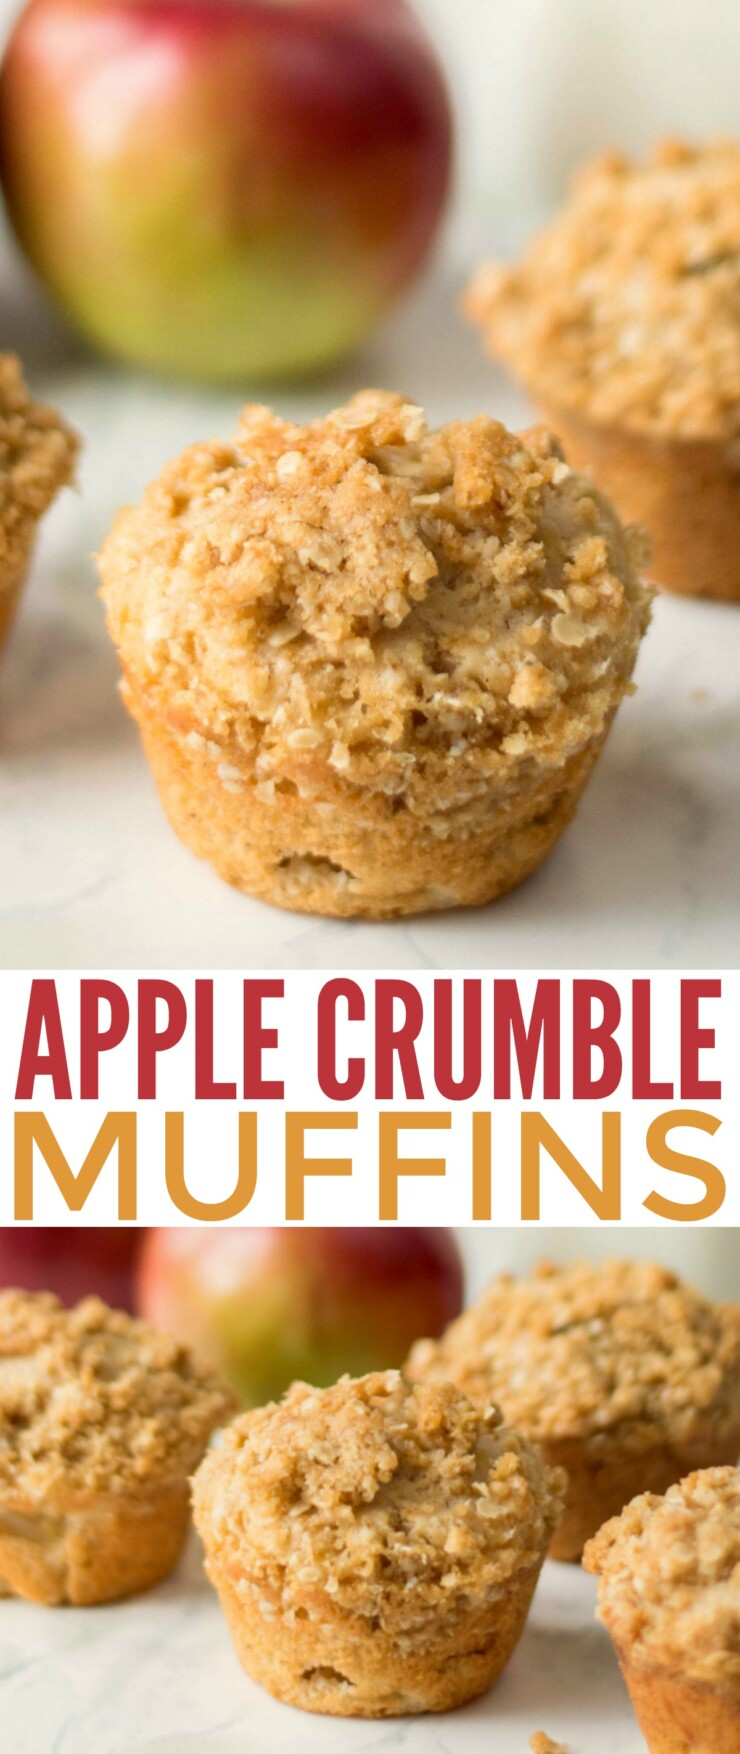 These Apple Crumble Muffins bring all the flavours of everyones favourite fall dessert right to the breakfast table.